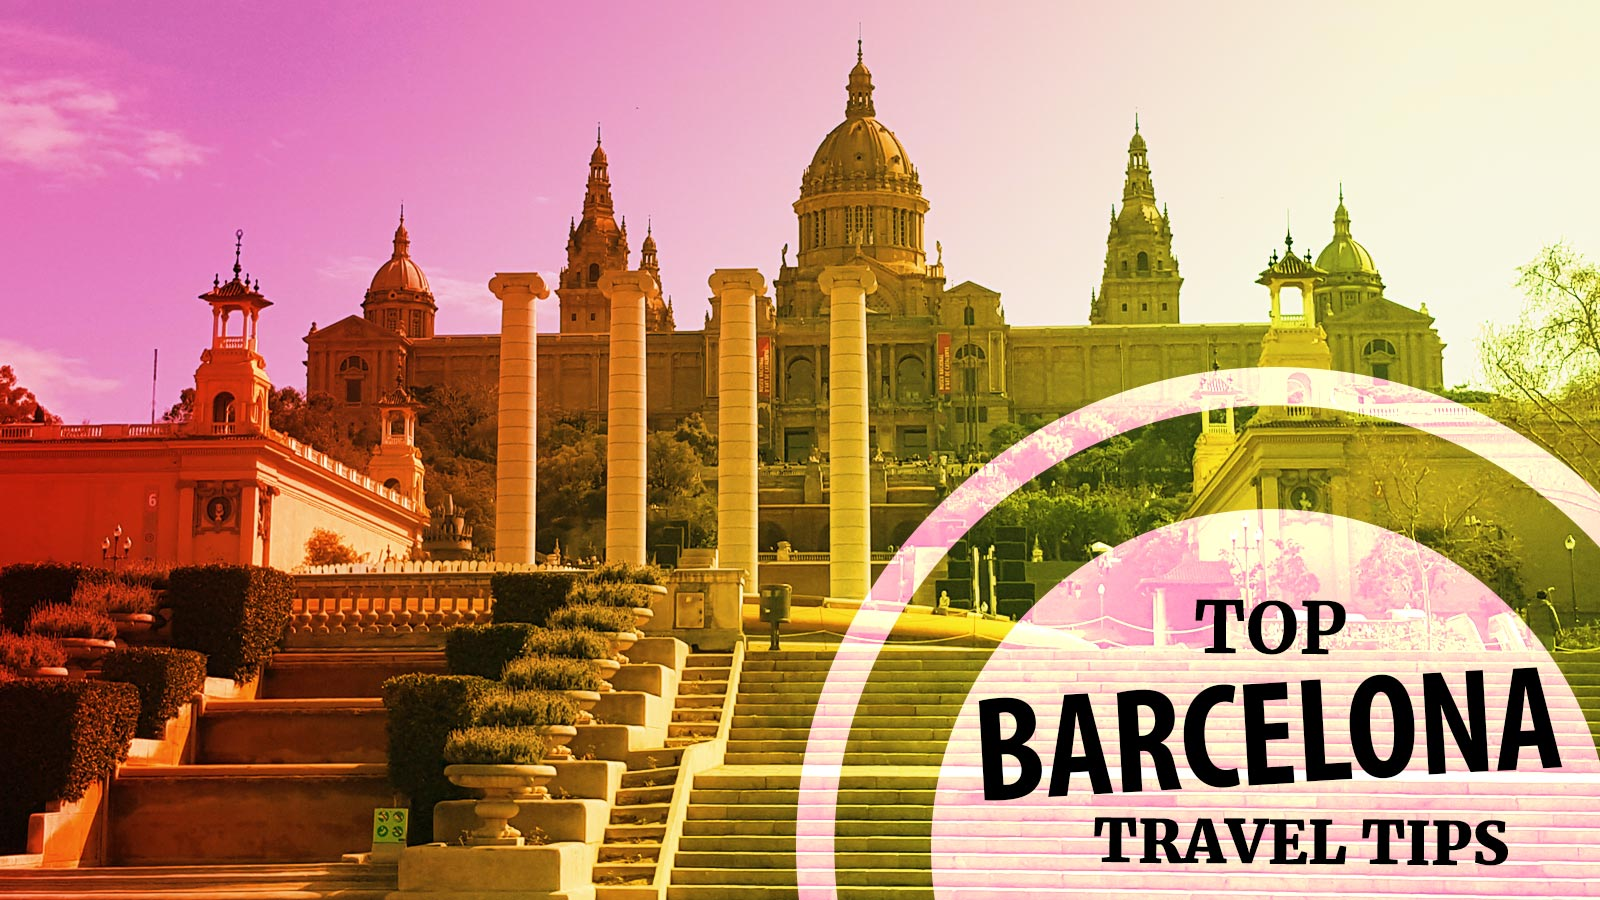 Top Barcelona Travel Tips